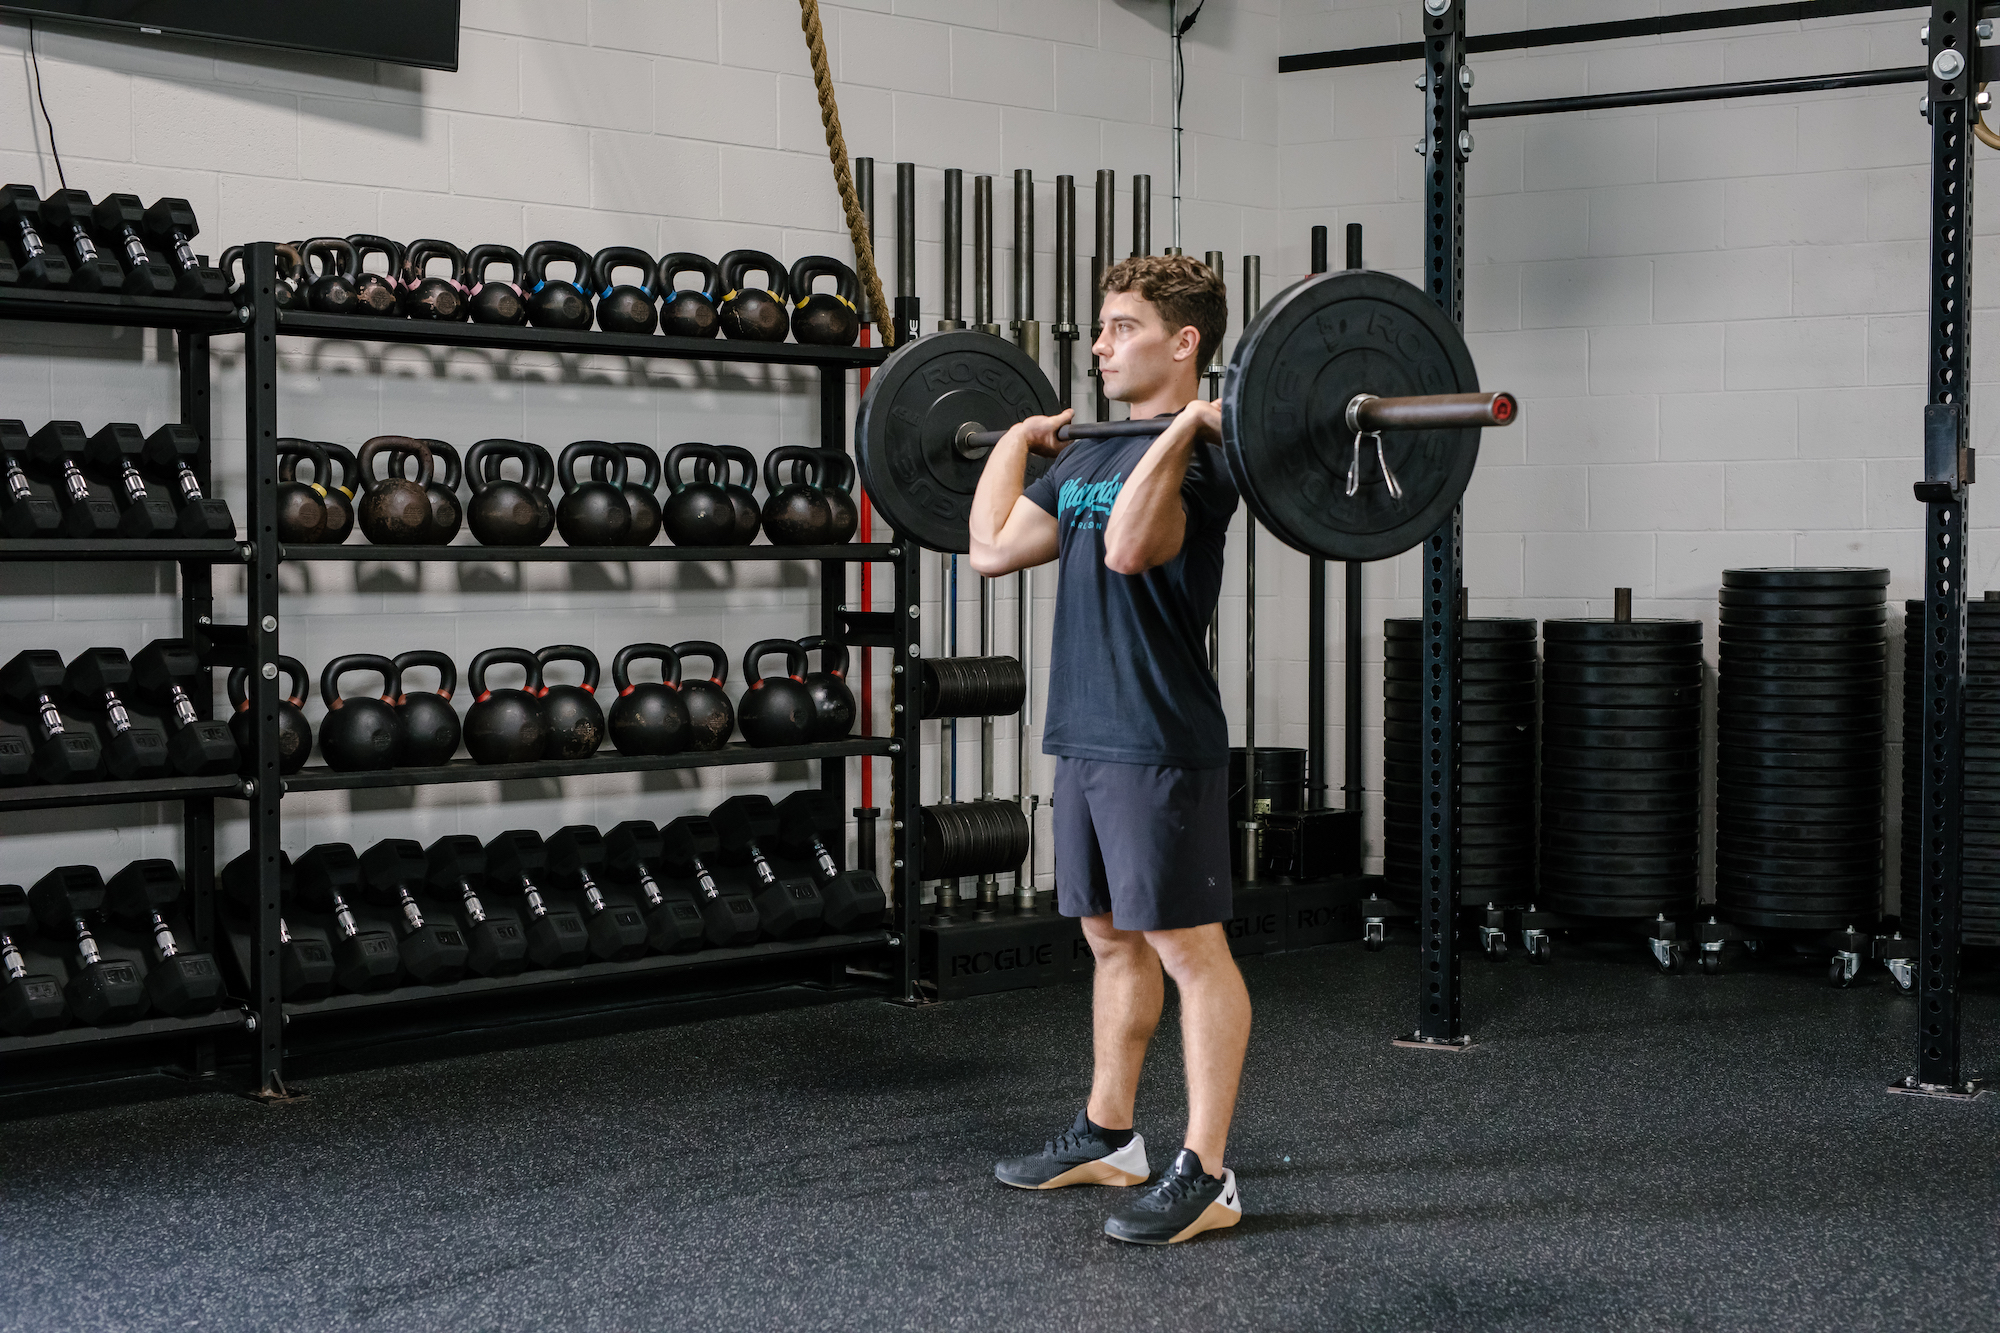 Points of Performance: The Shoulder Press